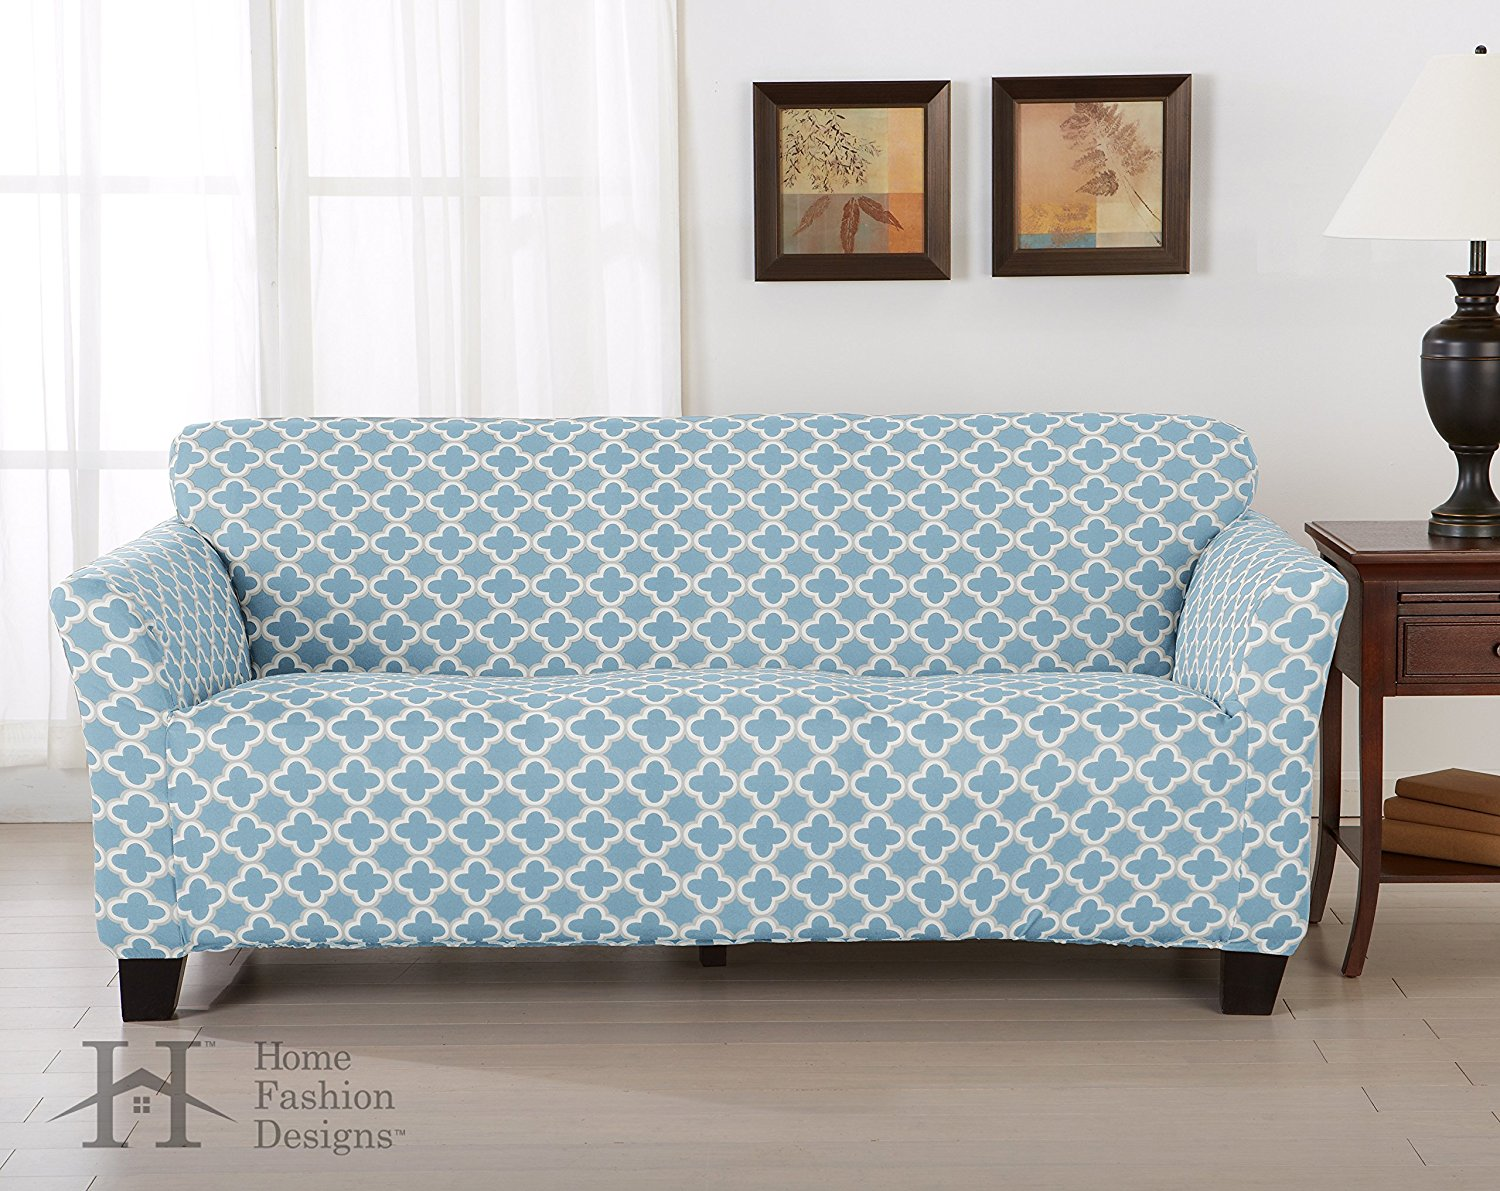 Brenna Collection Basic Strapless Slipcover. Form Fit, Slip Resistant, Stylish Furniture Shield / Protector Featuring Lightweight Twill Fabric. By Home Fashion Designs Brand. (Sofa, Blue)